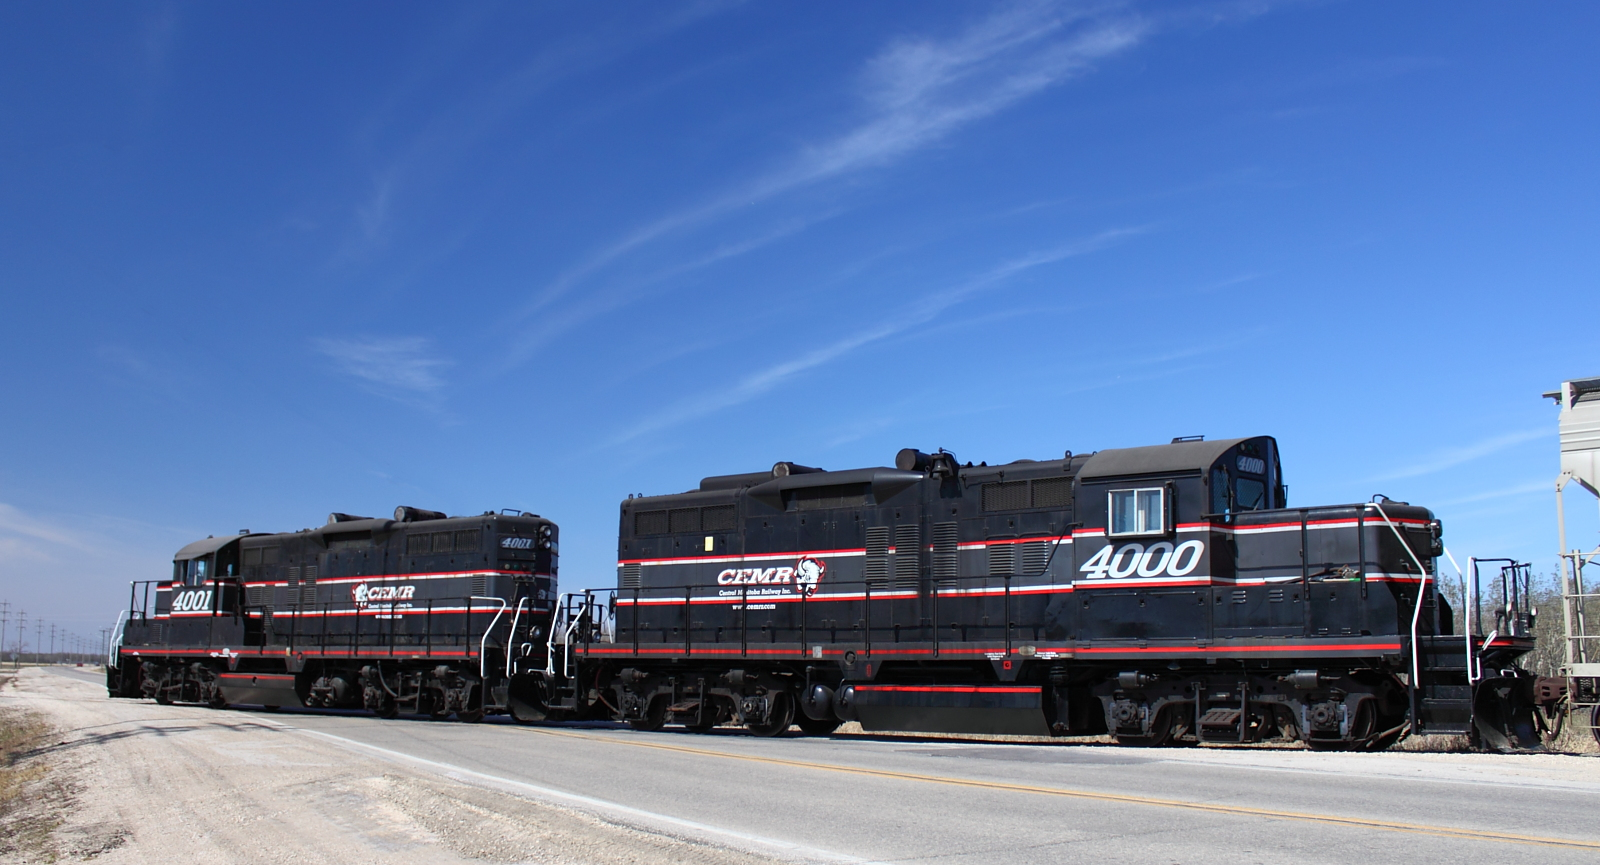 CEMR 4000 and 4001 in Winnipeg, MB 2012/04/12